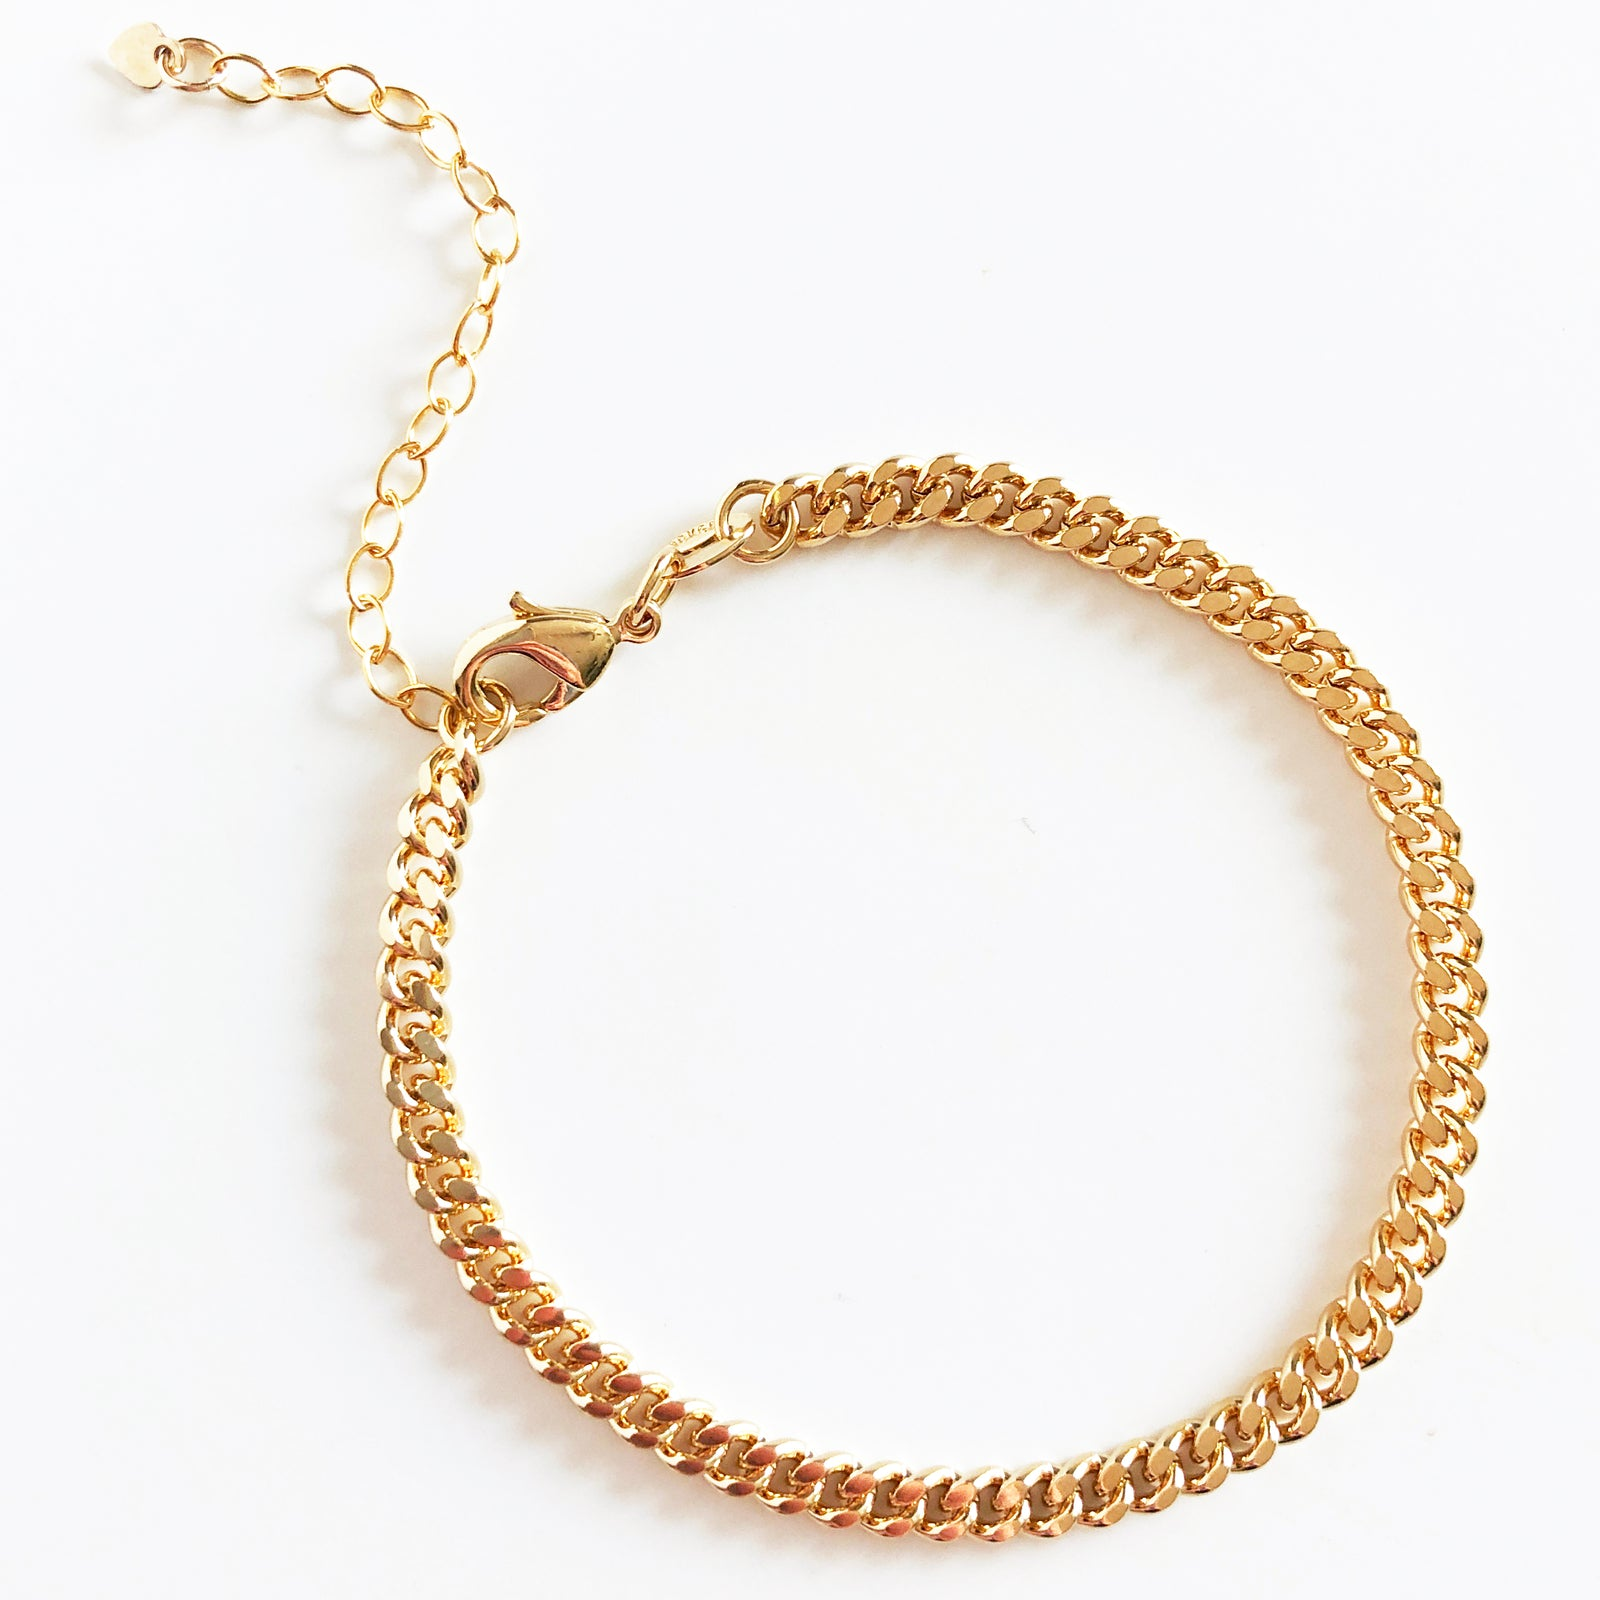 dainty gold curb link chain clasp bracelet